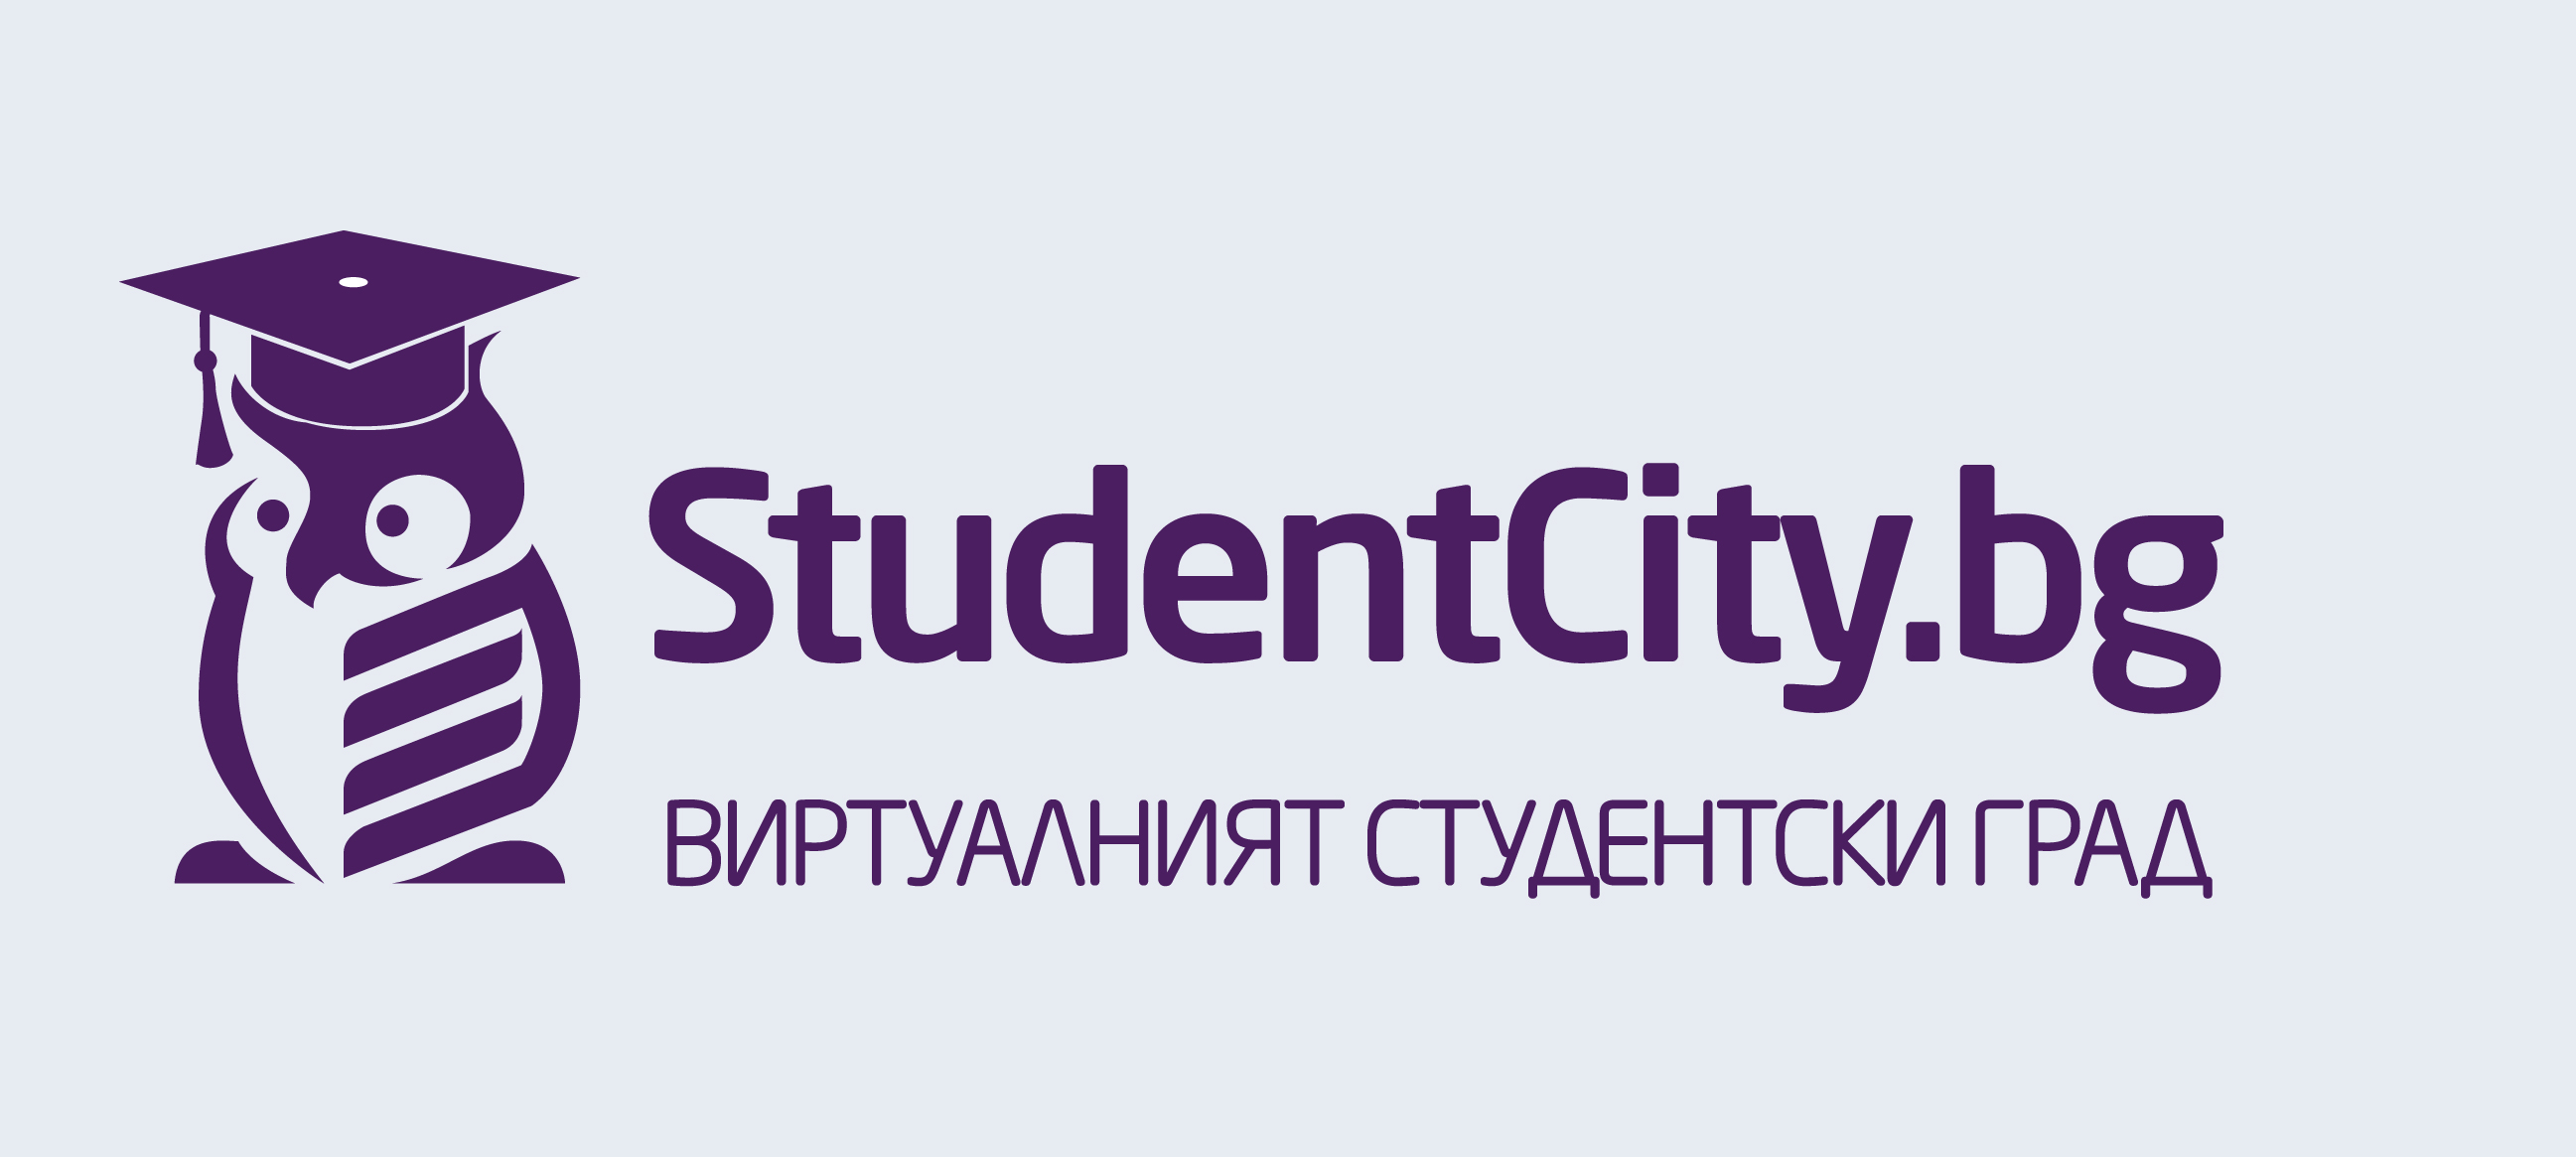 StudentCity.bg